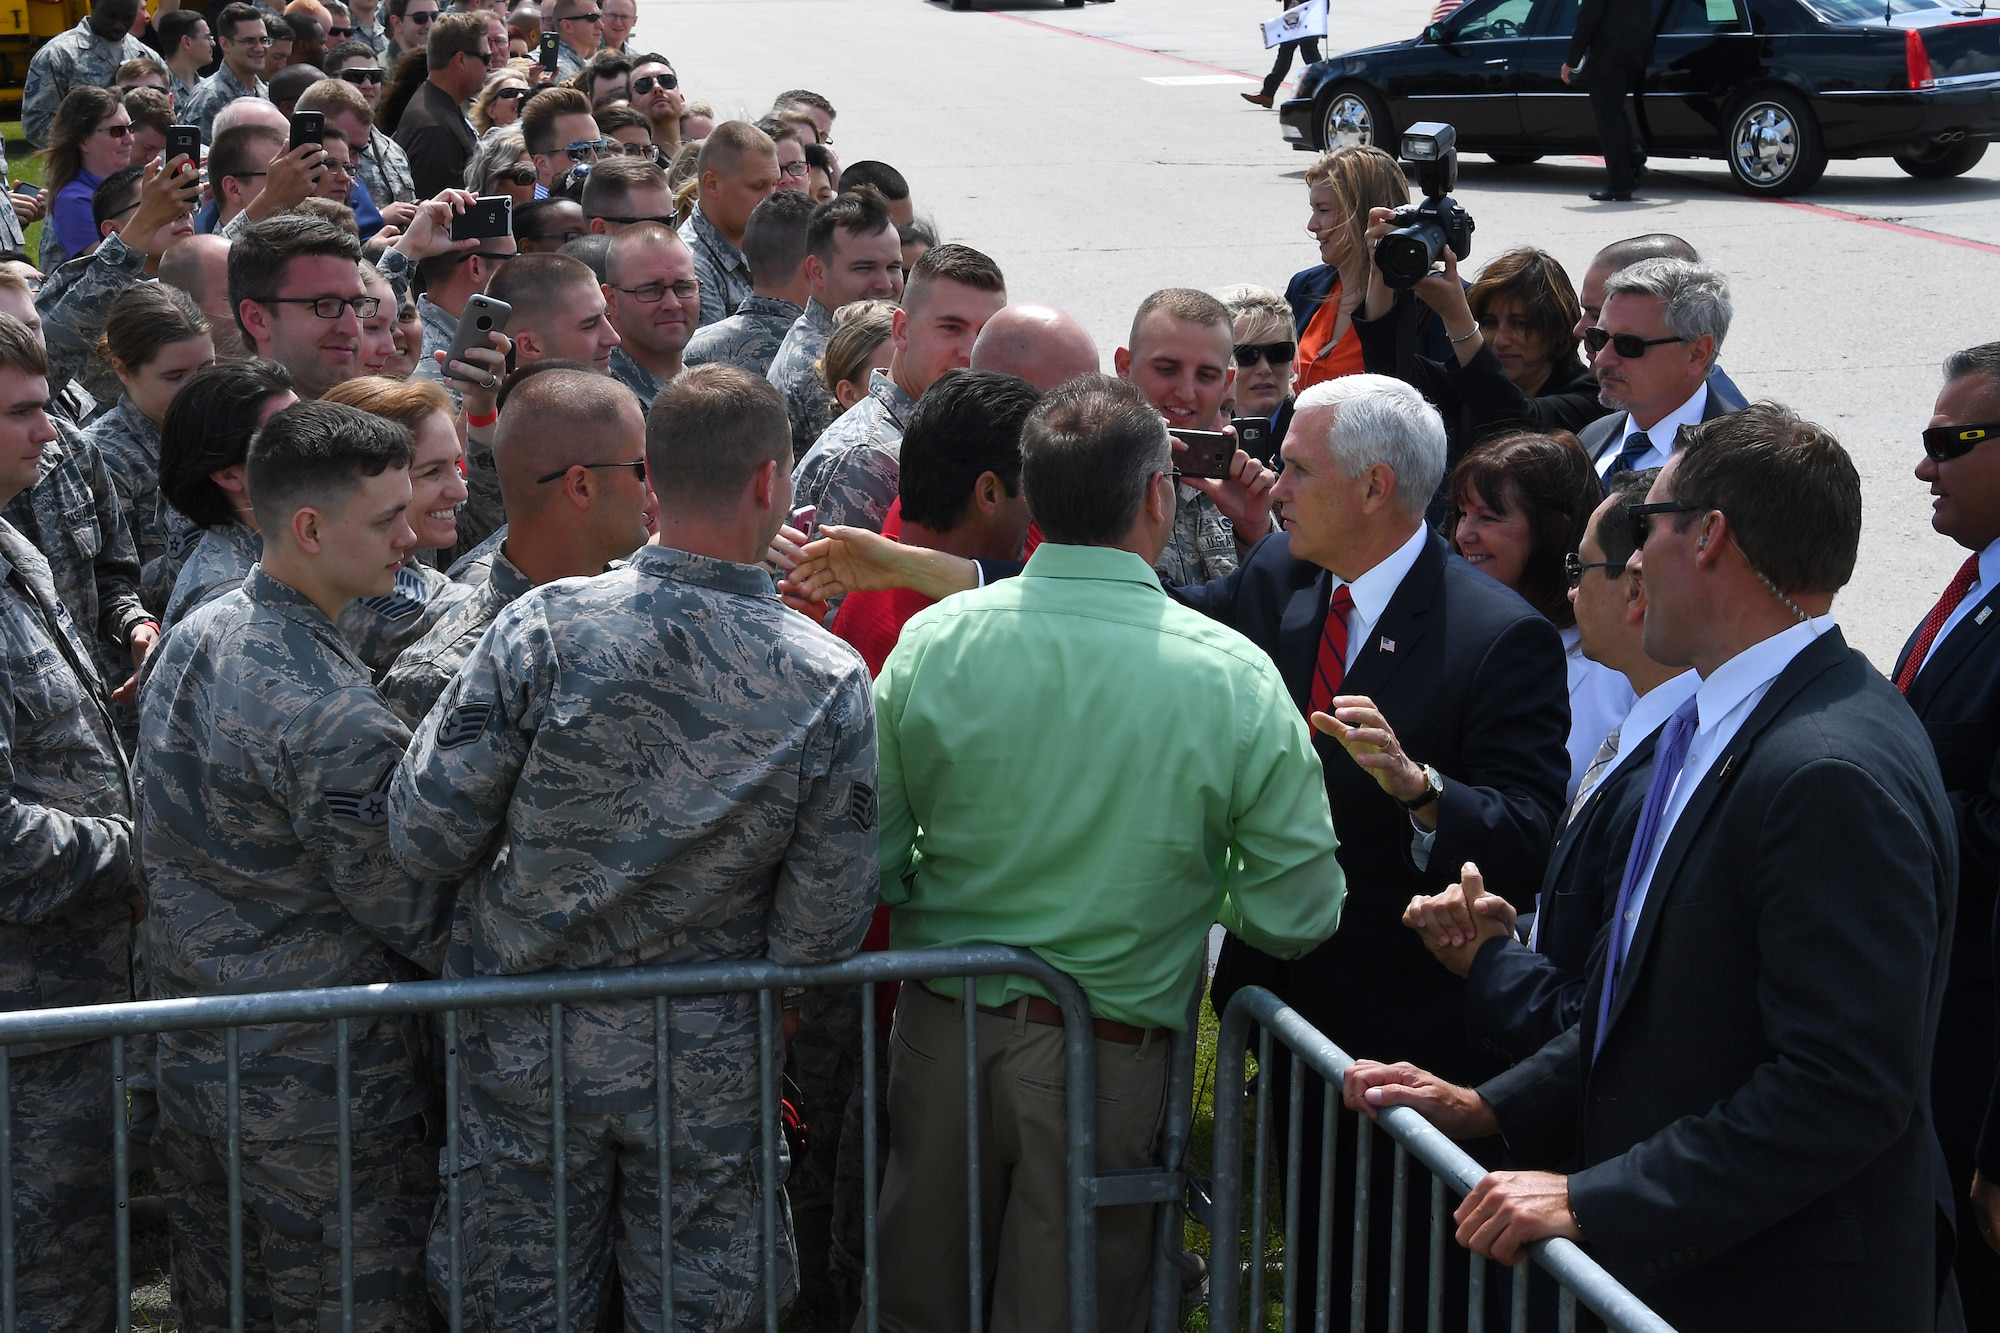 Vice President of the United States Michael Pence reaches out to shake hands with several Airmen July 25, 2018, after arriving to Grand Forks Air Force Base, North Dakota. During his visit, Pence was able to get a glimpse into some of the Grand Forks AFB missions, to include worldwide intelligence, surveillance and reconnaissance using the RQ-4 Global Hawk. (U.S. Air Force photo by Airman 1st Class Elora J. Martinez)